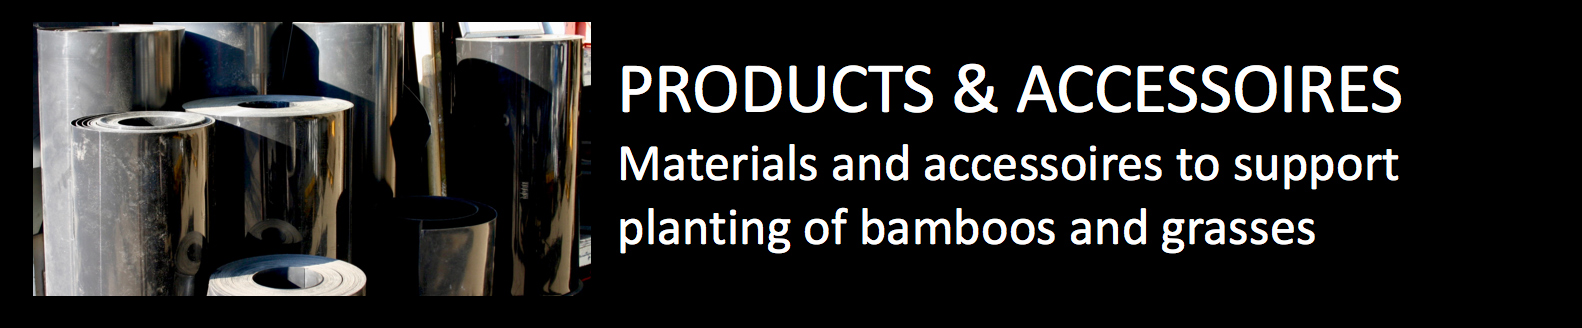 Plantstore Products and accessoires materials and accessoires to support planting of bamboos and grasses